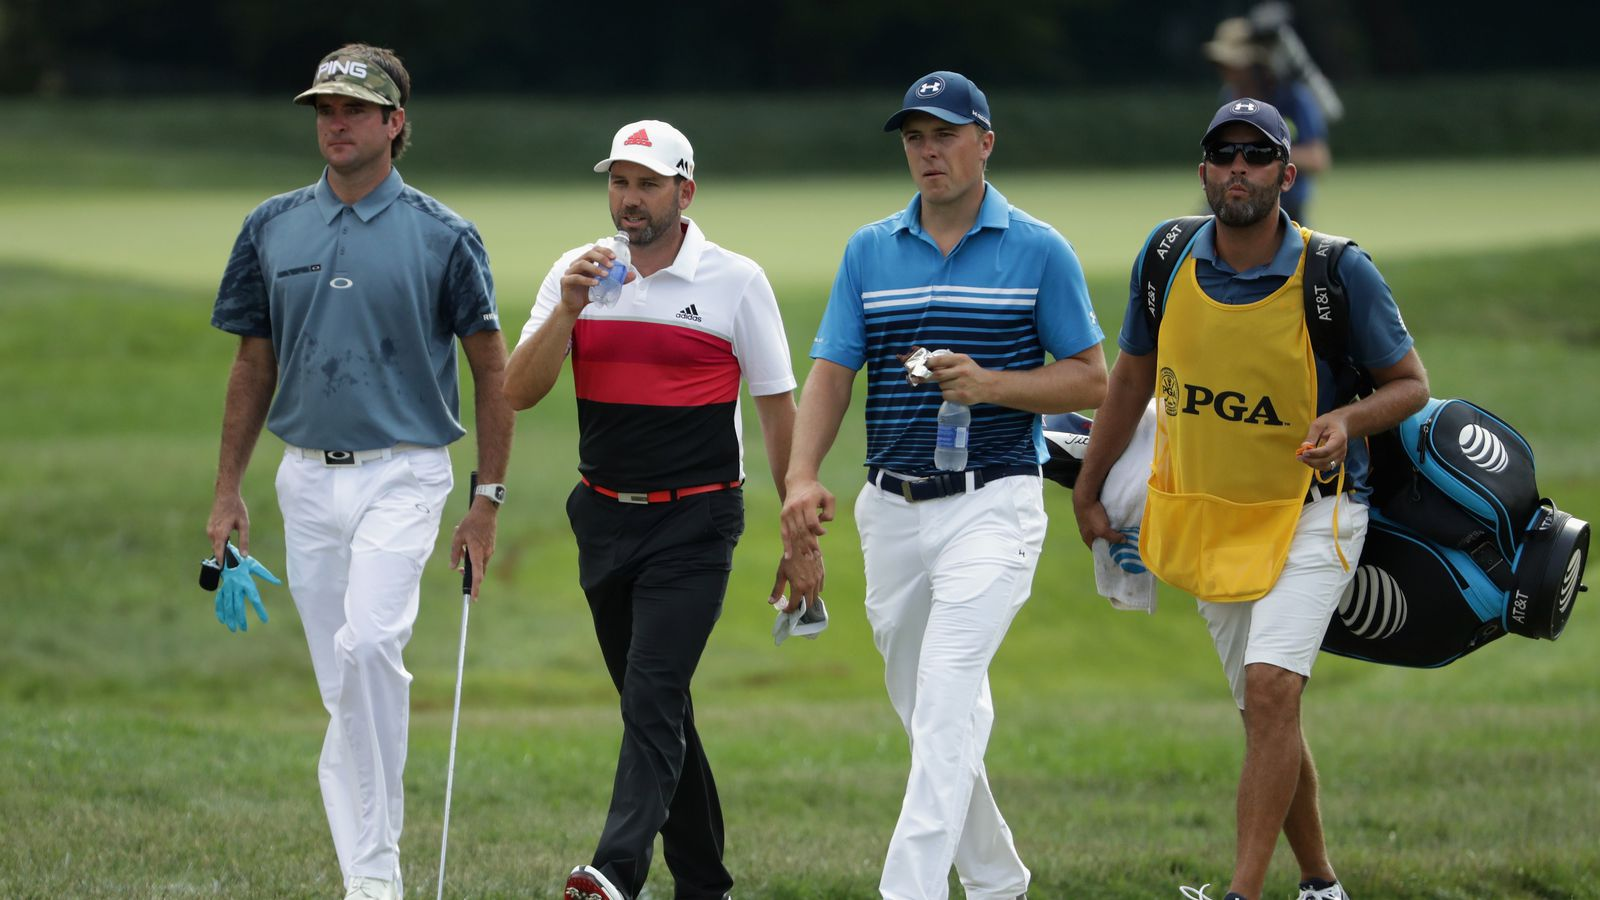 2016 pga championship  scores  leaderboard updates and